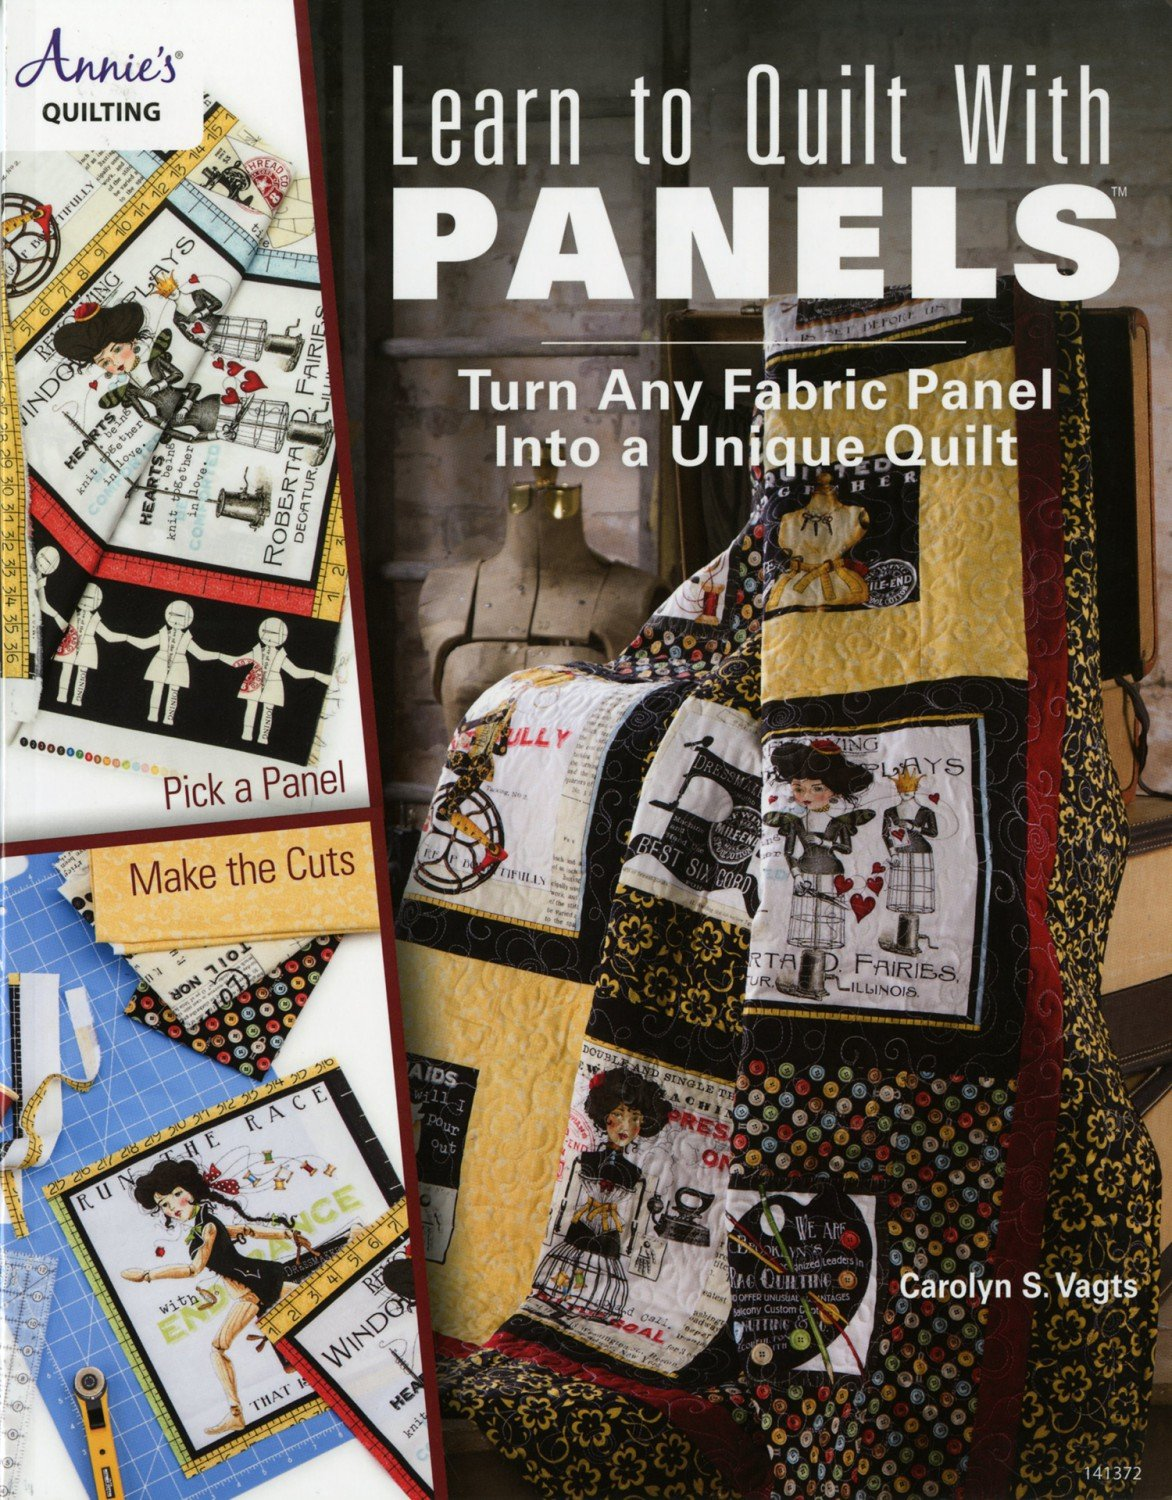 Quilting Book - Learn to Quilt With Panels - Softcover from Annie's